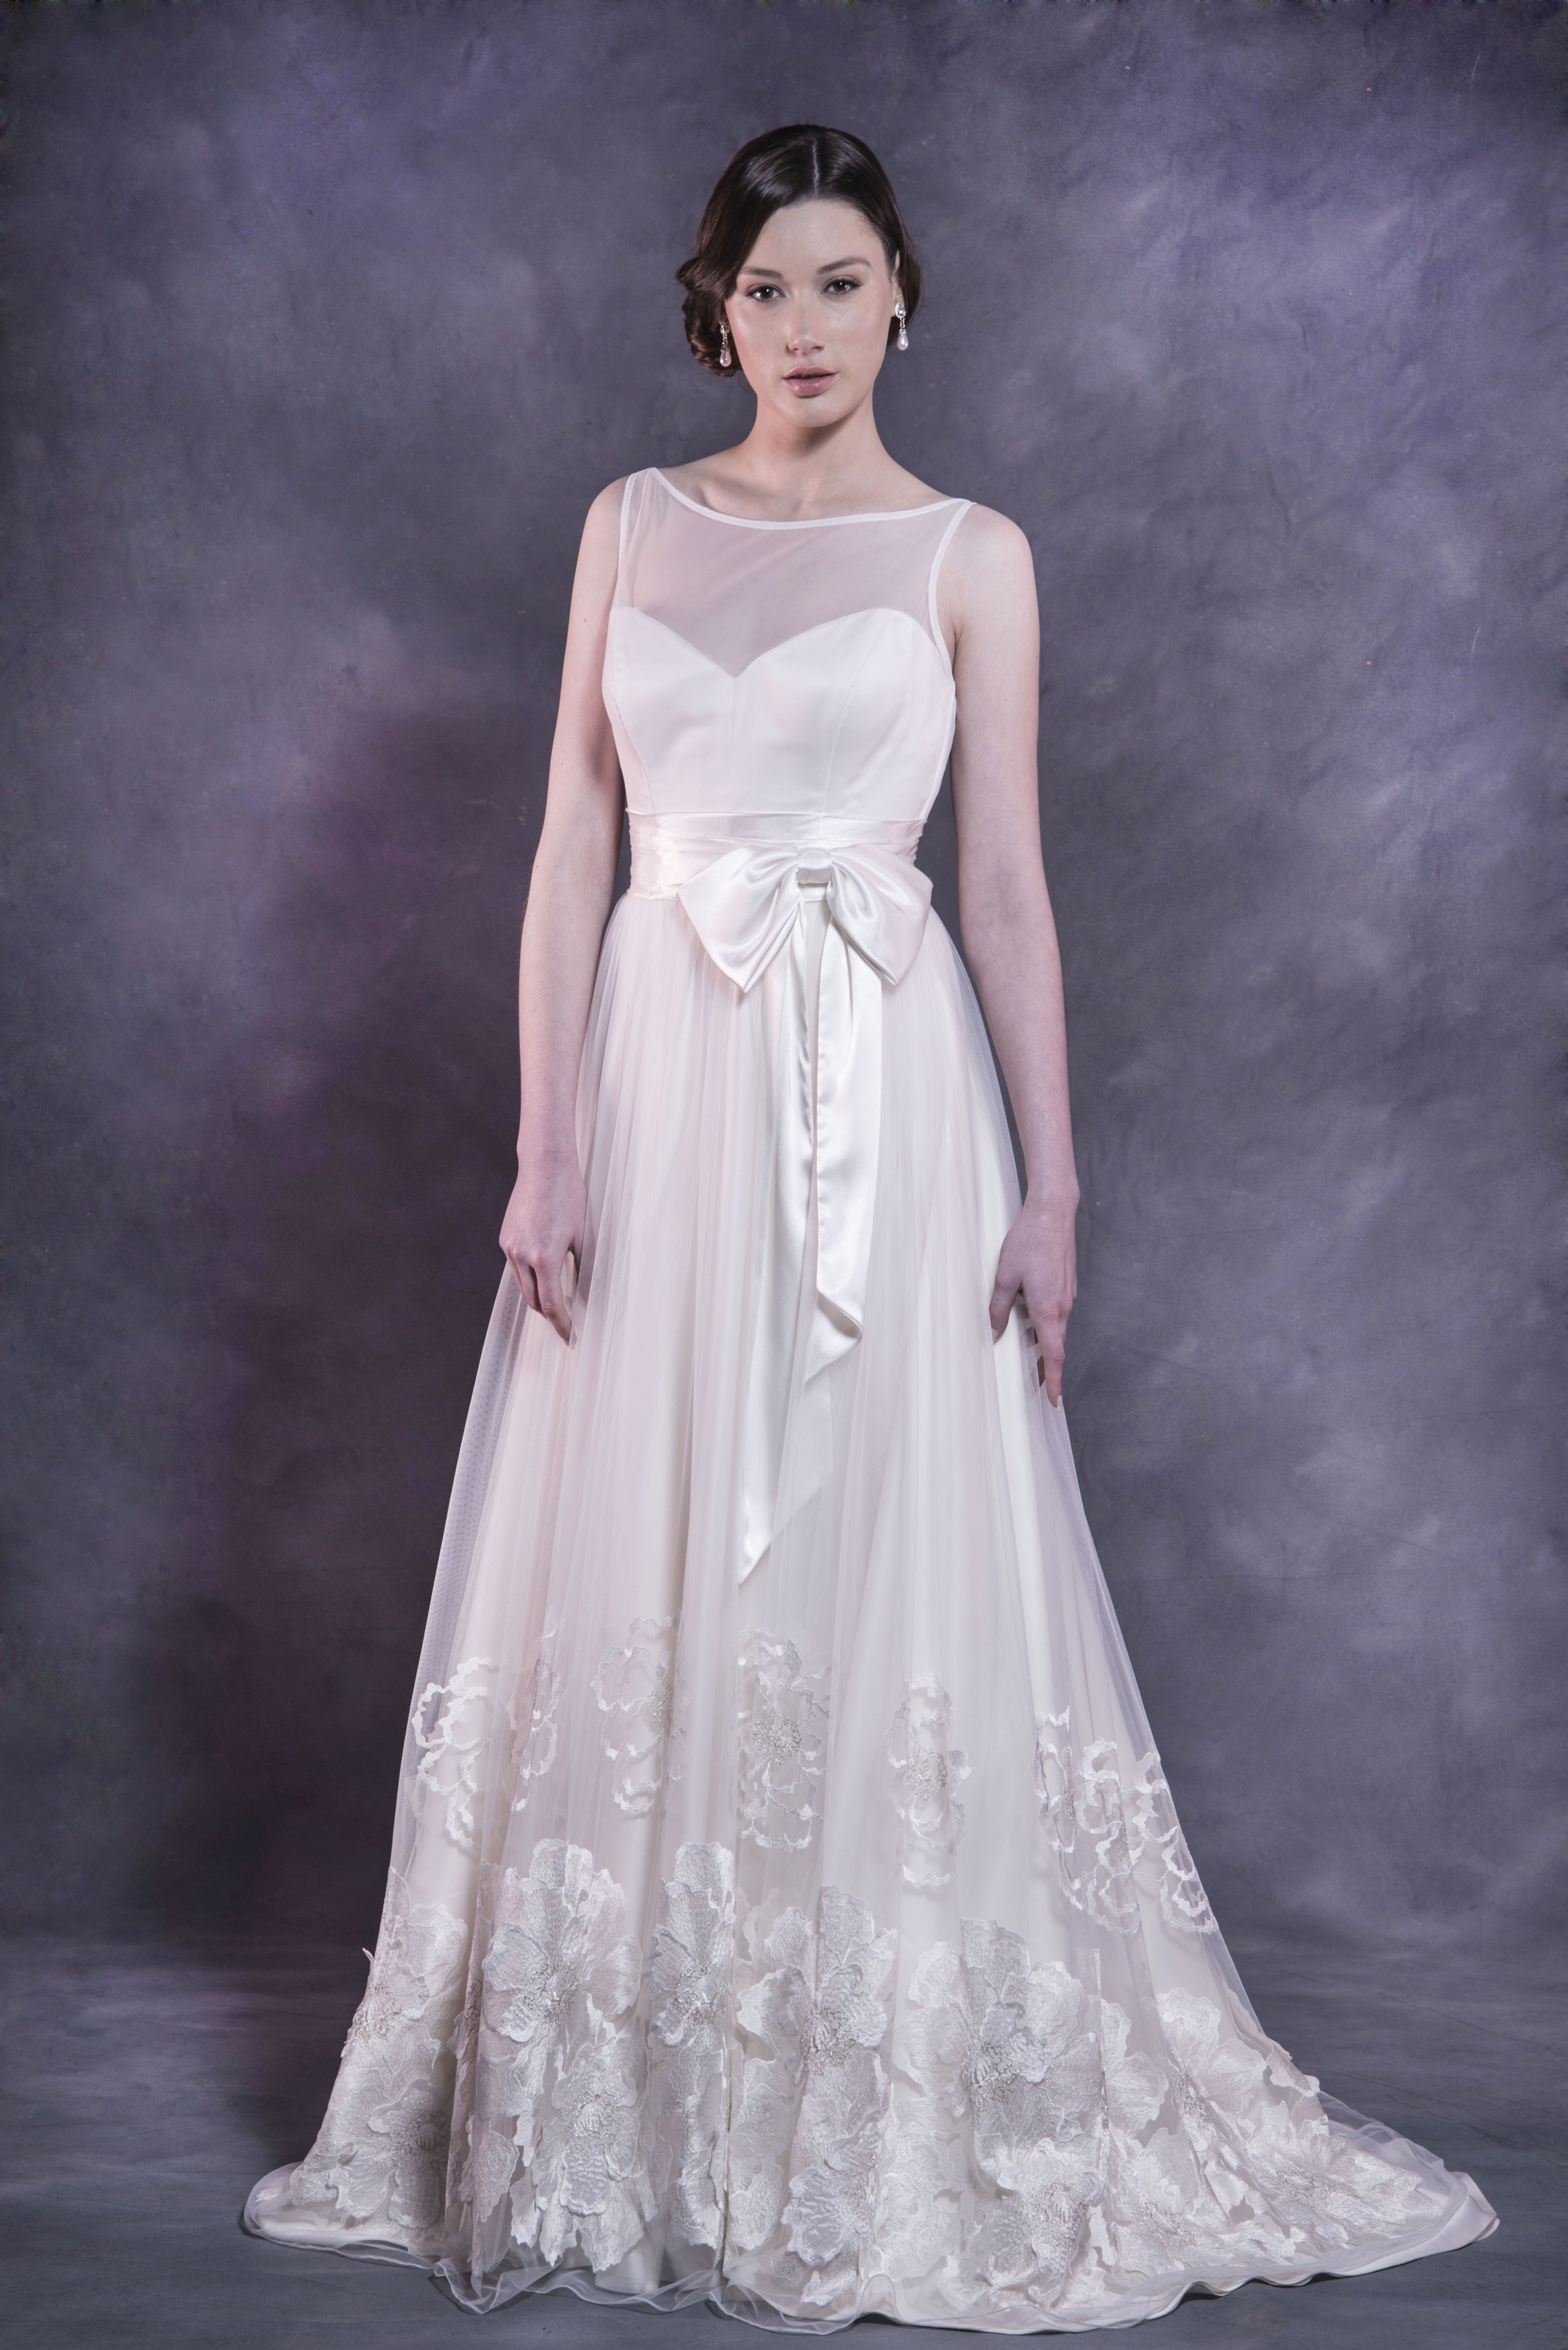 The 'Annabelle' gown from Caleche Bridal has a sweetheart